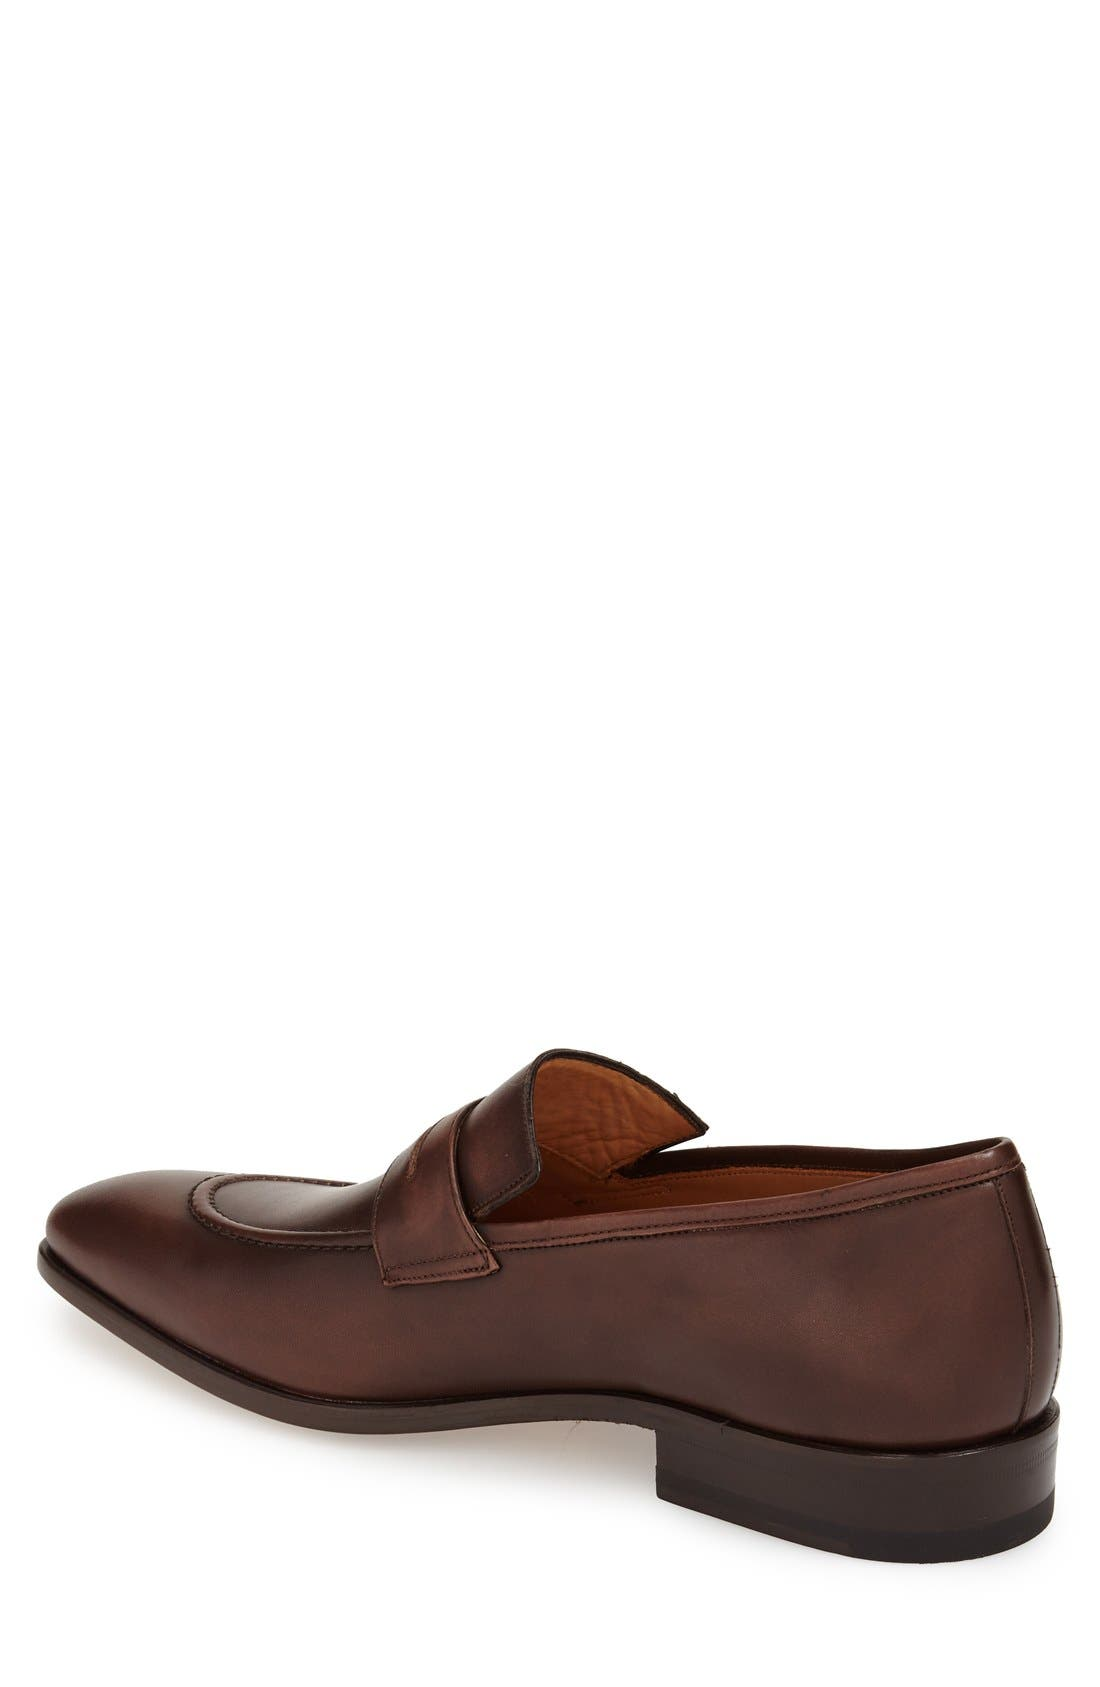 'Bione' Penny Loafer,                             Alternate thumbnail 4, color,